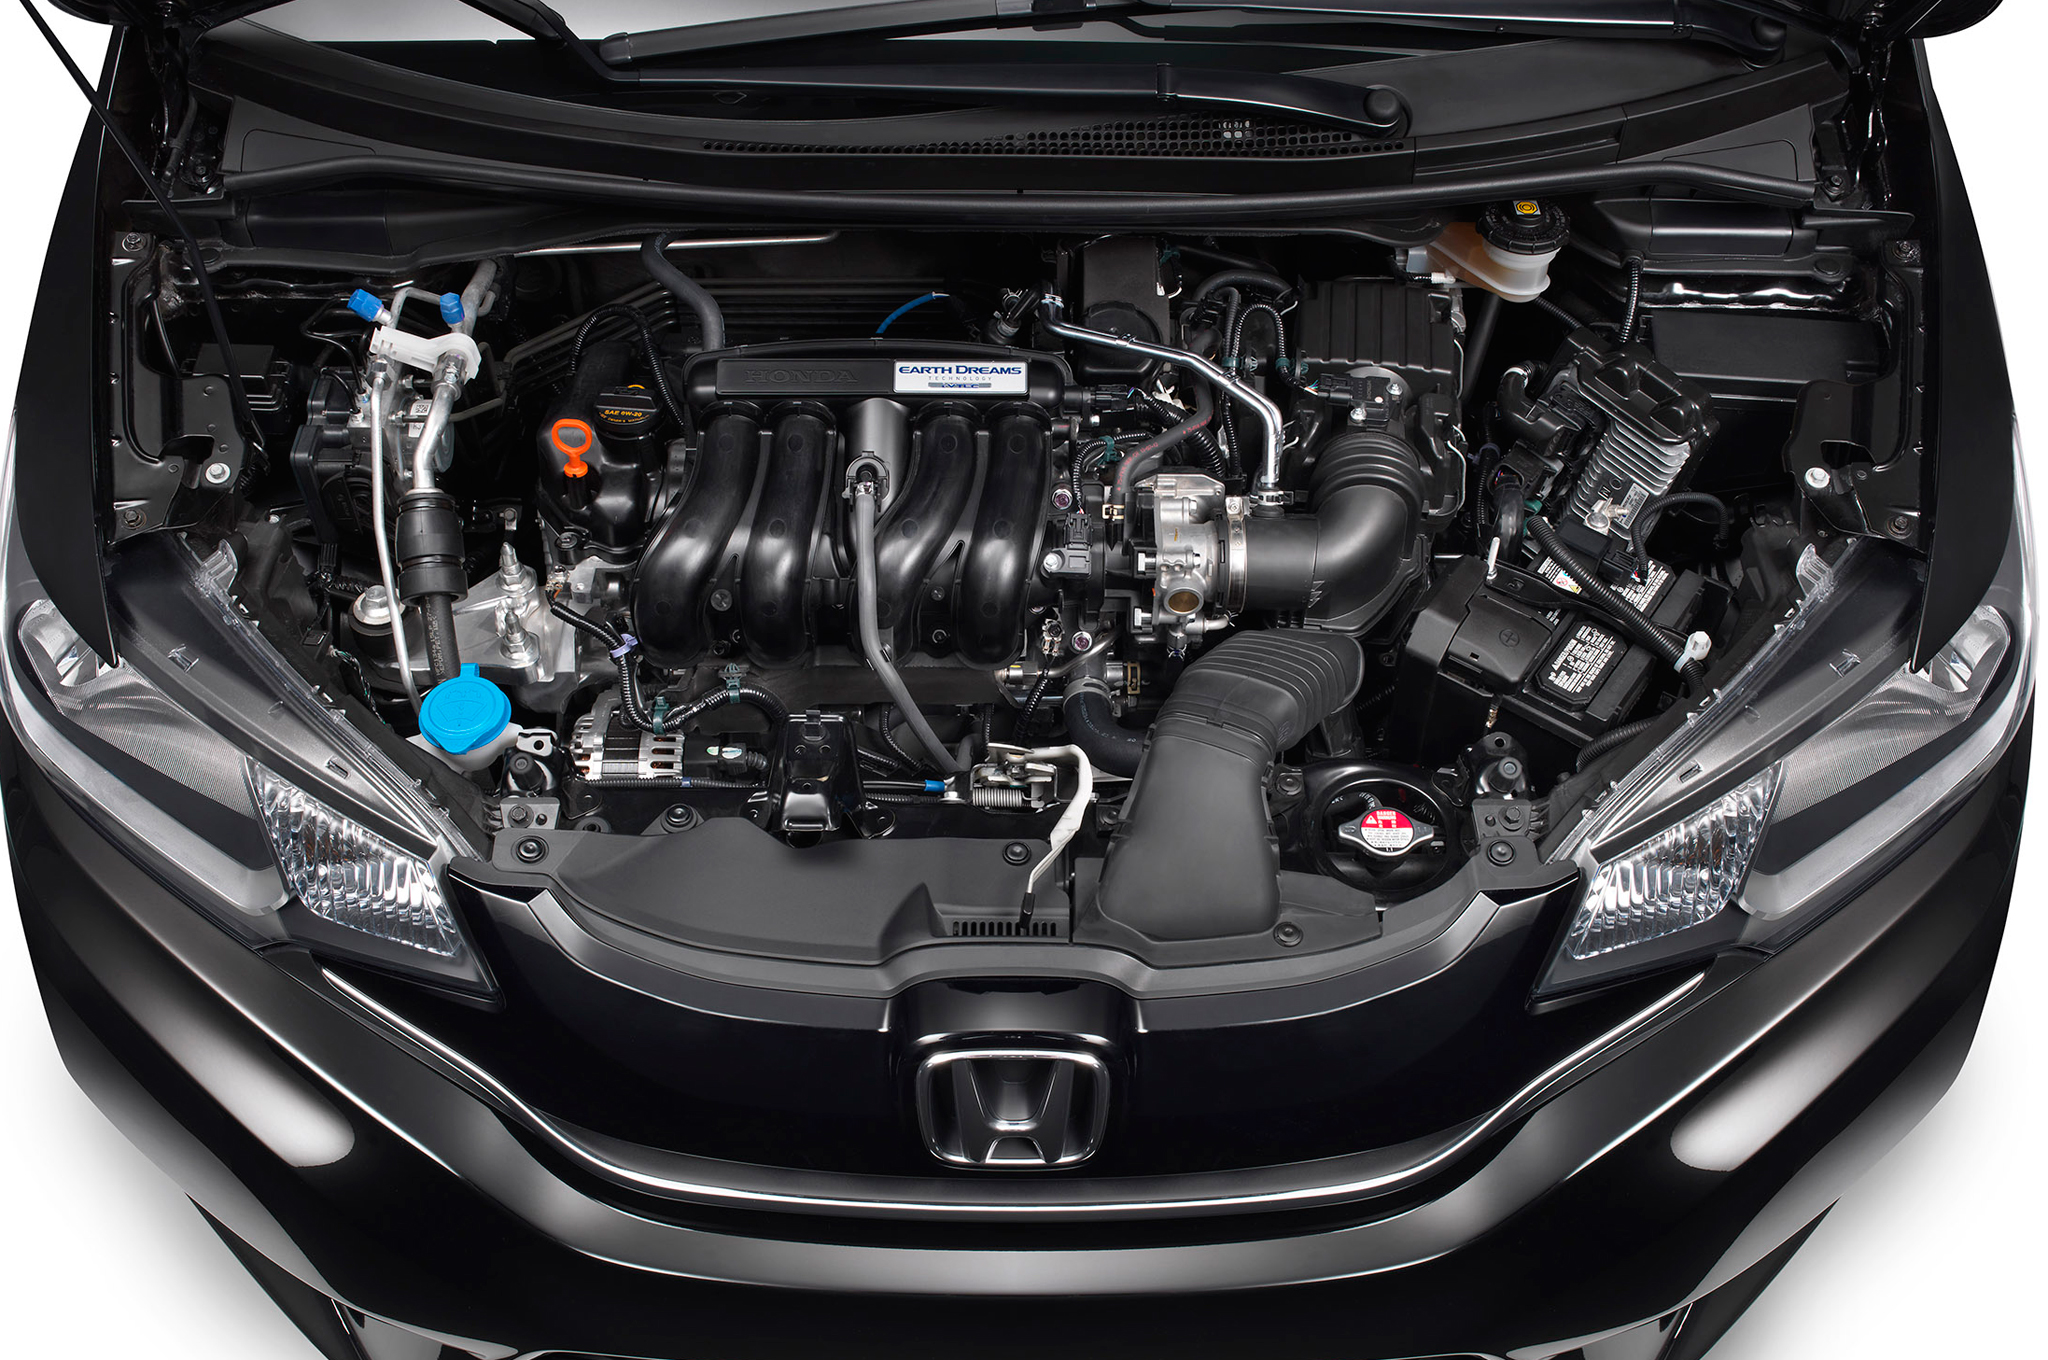 2015 Honda Fit Engine Profile (Photo 14 of 16)